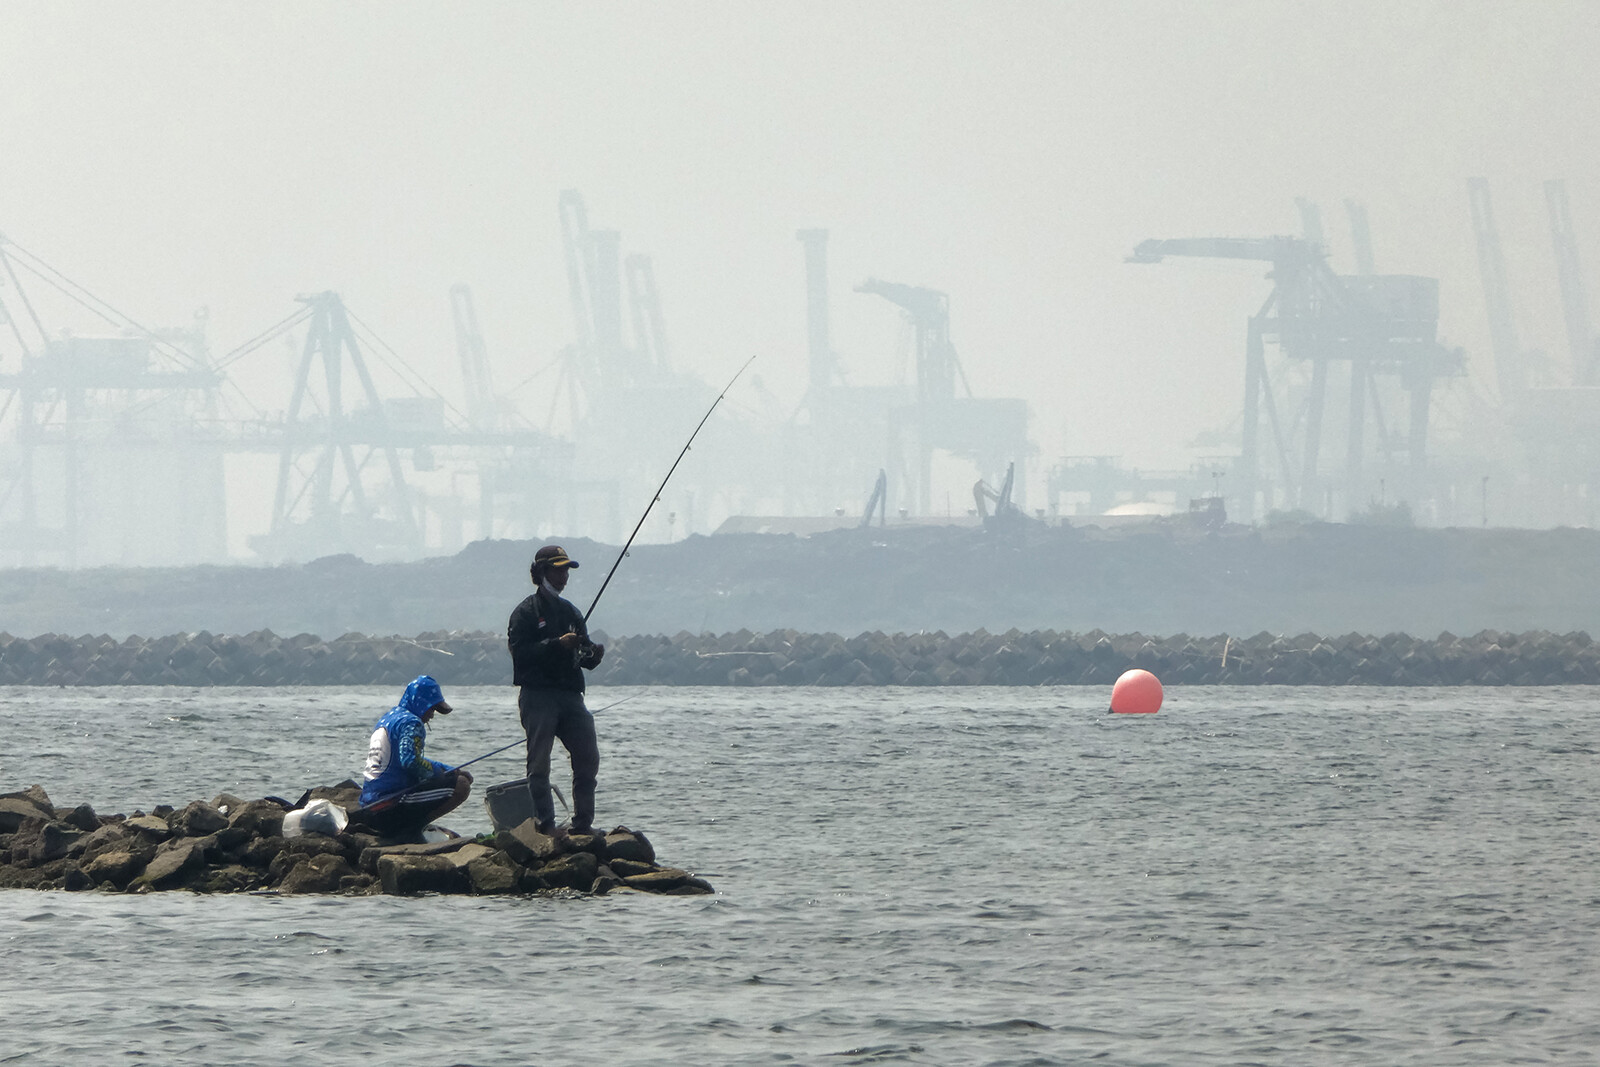 <i>Bay Ismoyo/AFP/Getty Images</i><br/>Anglers fish amid thick haze at a coastal area in Jakarta on June 20